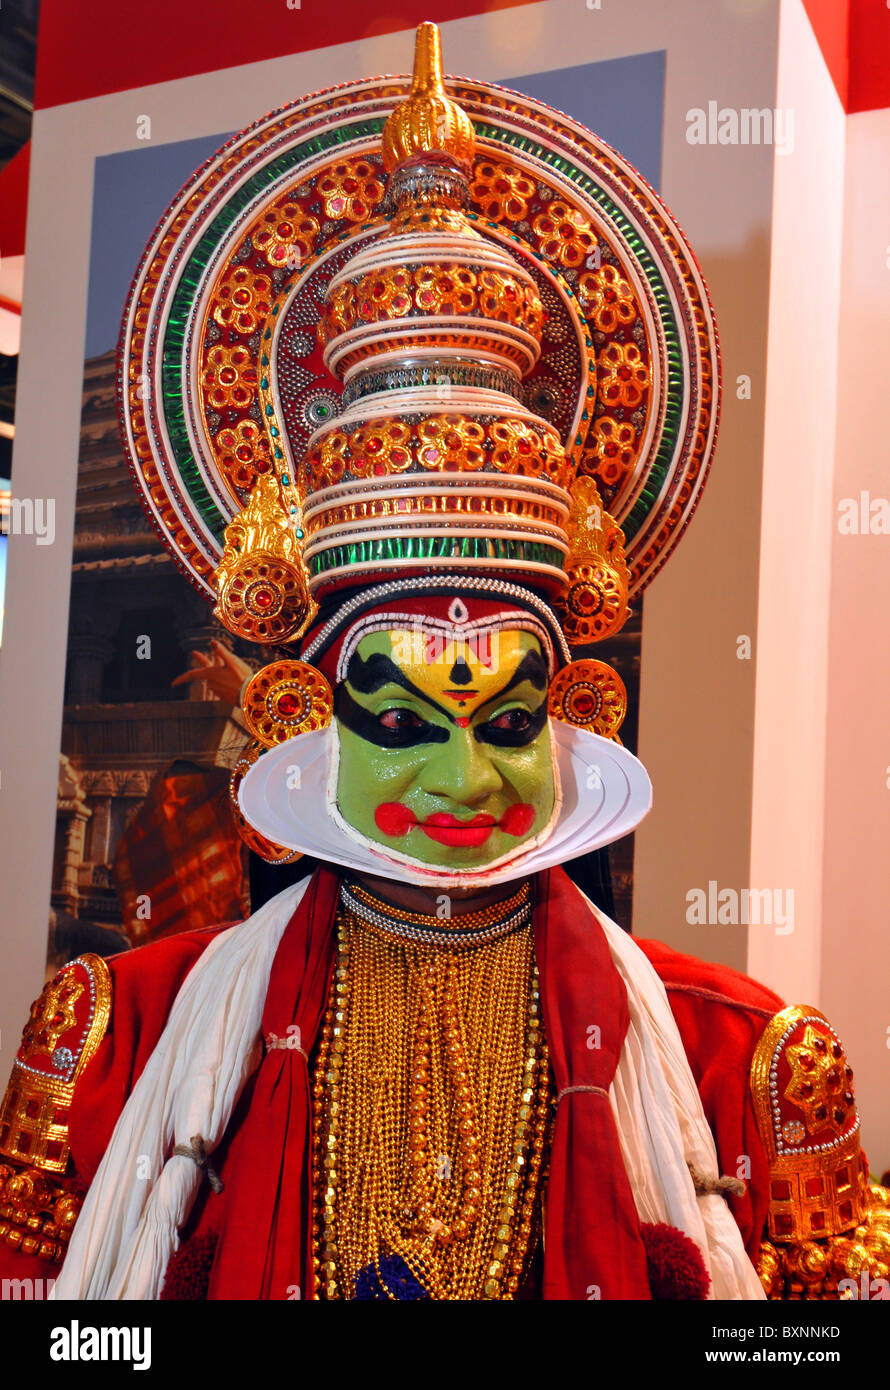 Indian dancer in traditional costume, Kathakali - Stock Image